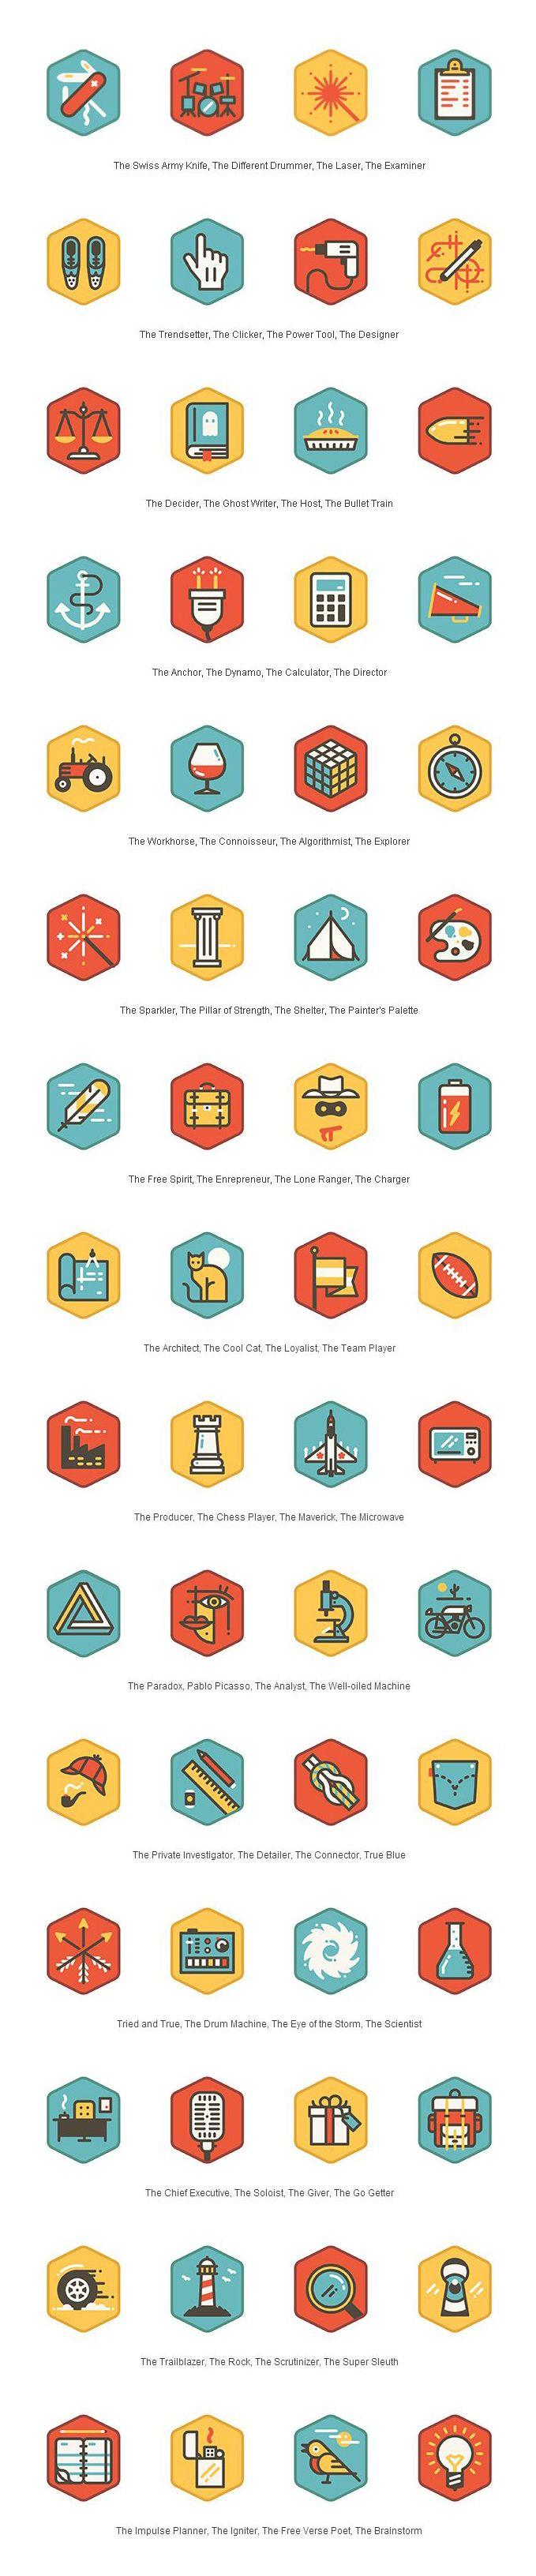 TidePool #icons #illustration #pictograms